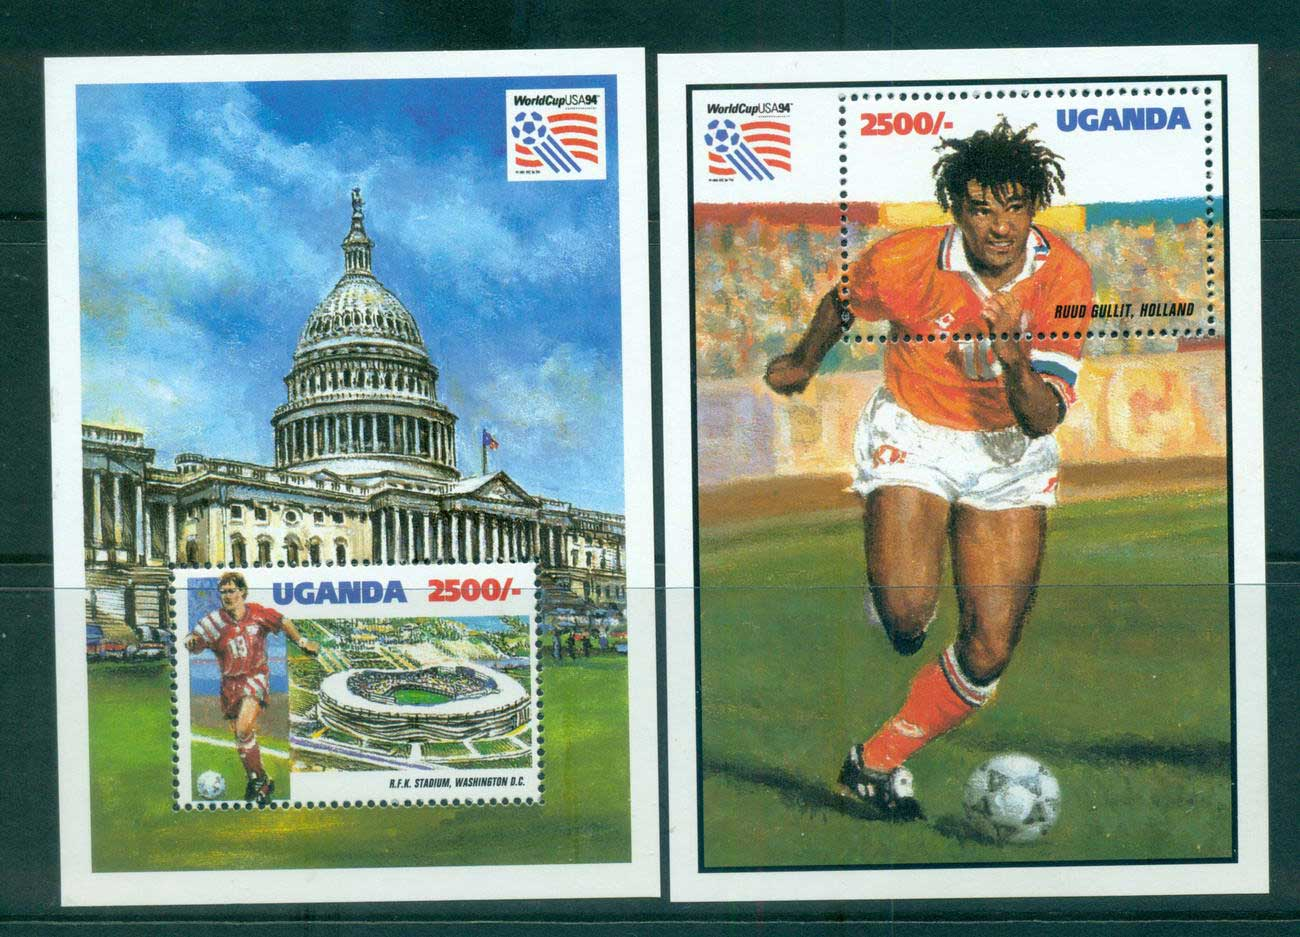 Uganda 1993 World Cup Soccer 2x MS MUH Lot55282